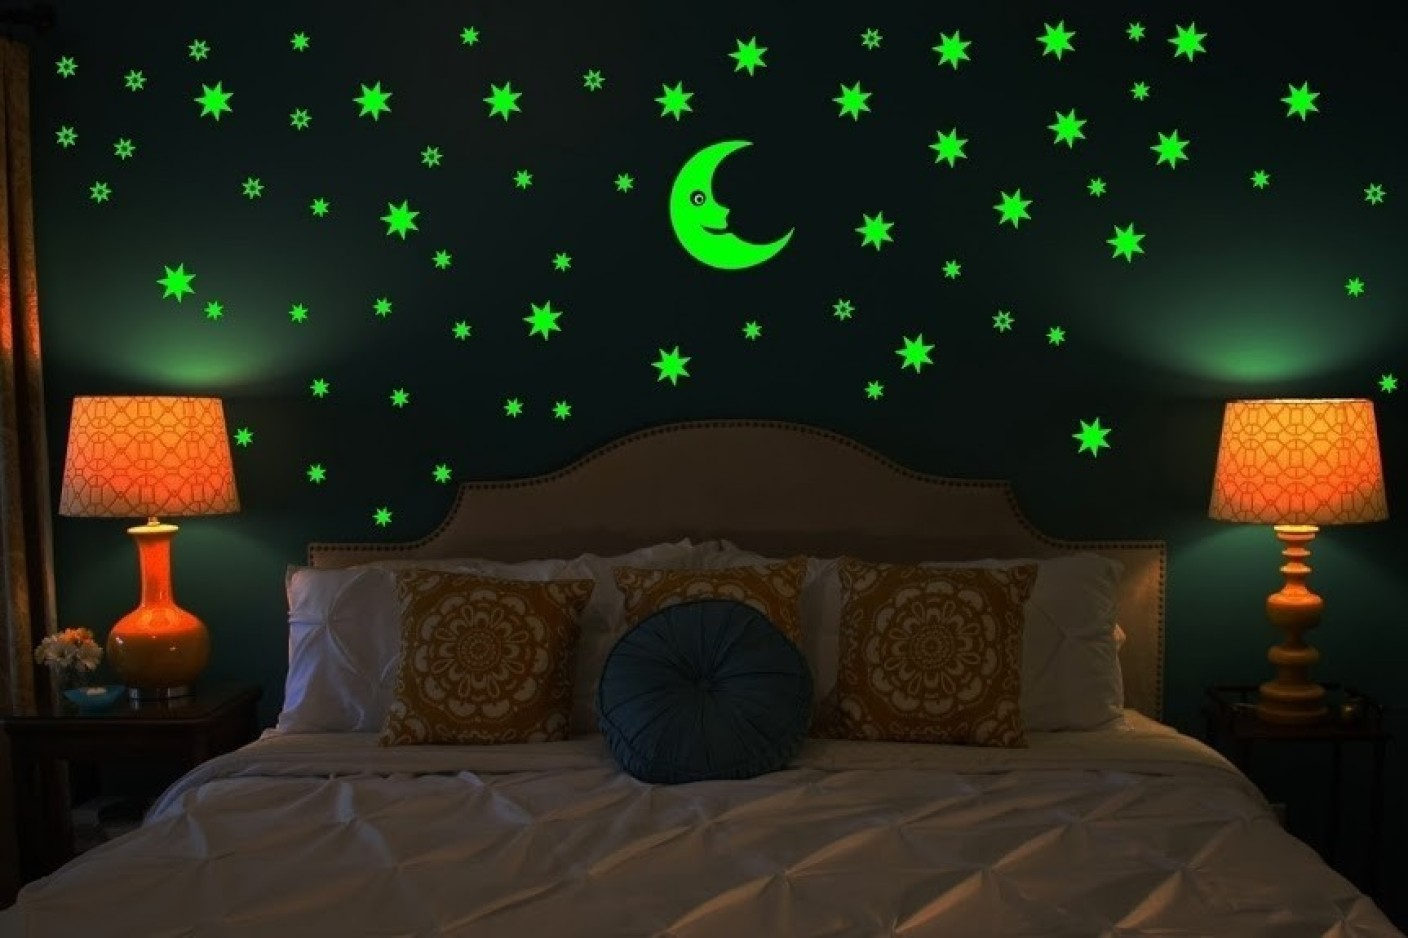 Stars Stickers For Walls Wow Interiors Medium Radium Sticker Price In India Buy